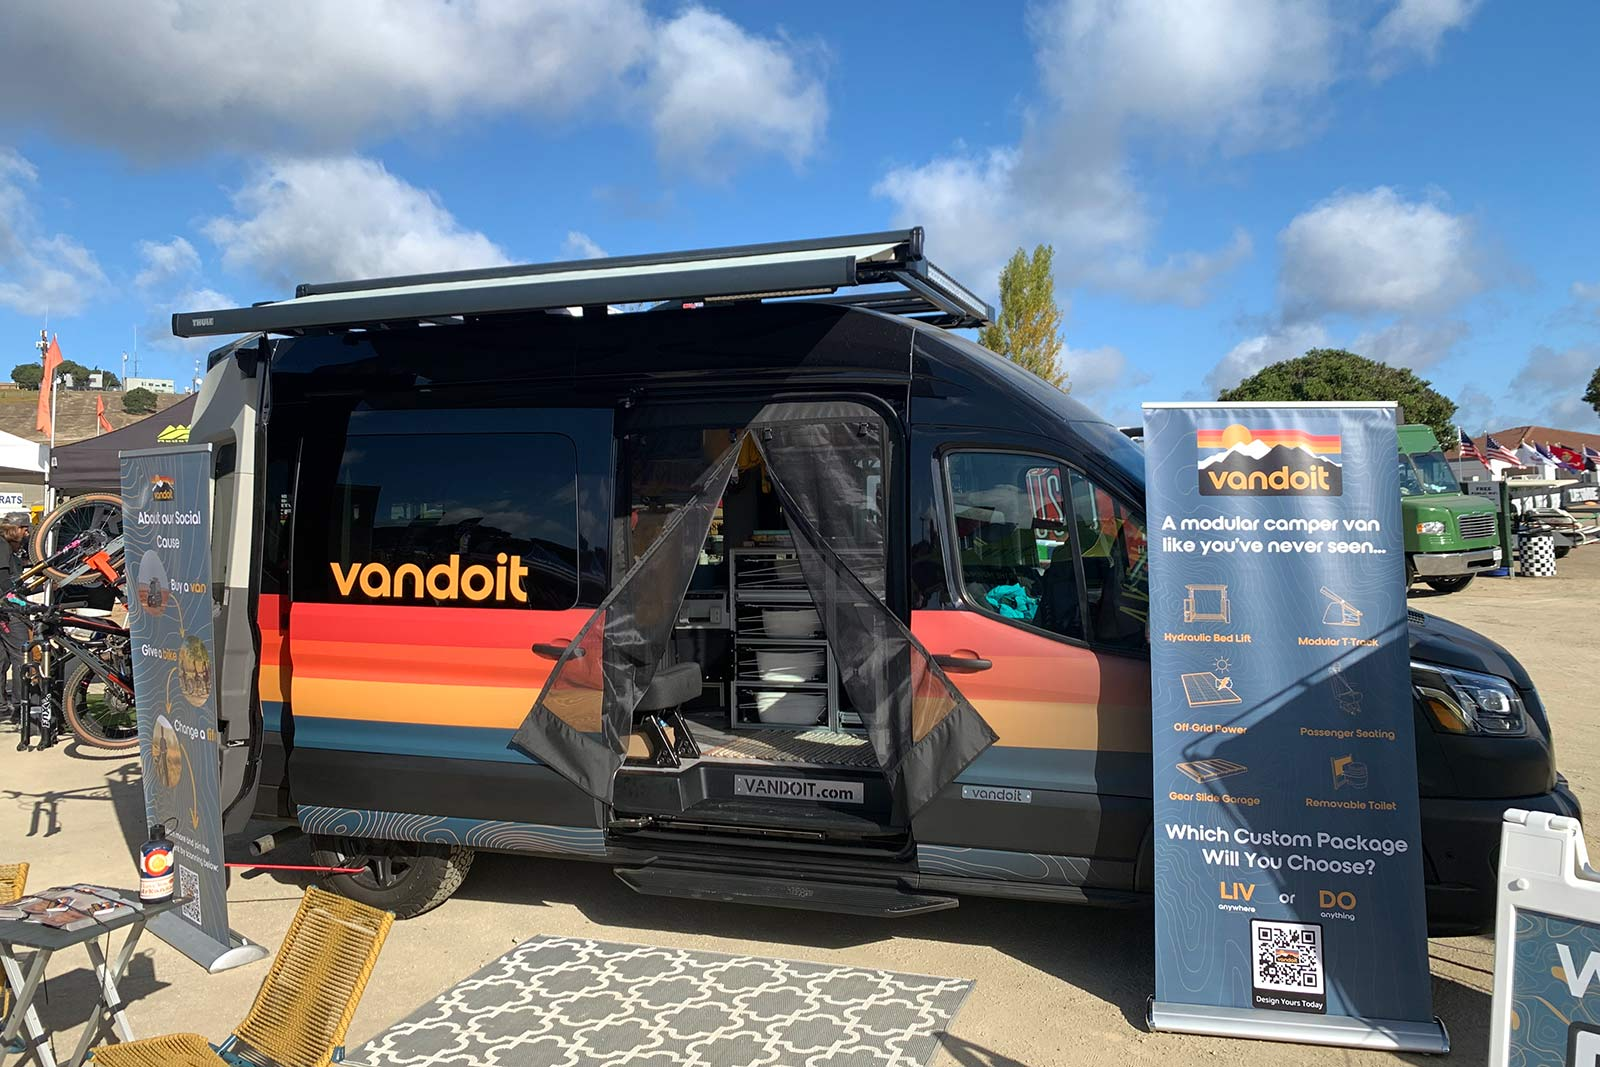 vandoit custom camper van with modular interior and slide-out bike tray and workstand